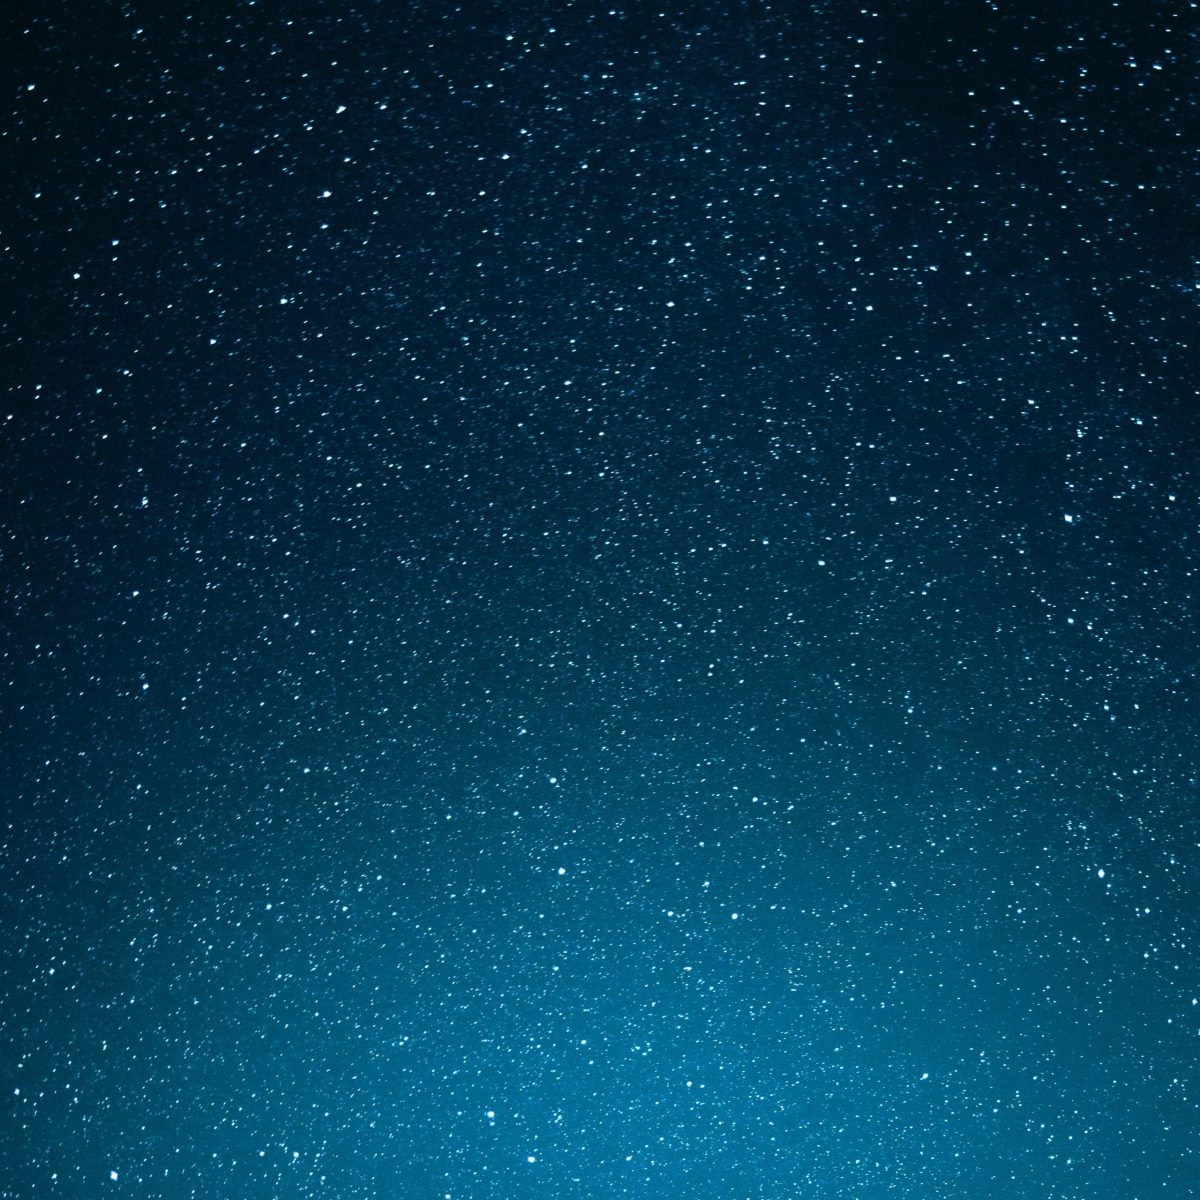 a very starry sky, gradients from top to bottom of dark to lighter blue